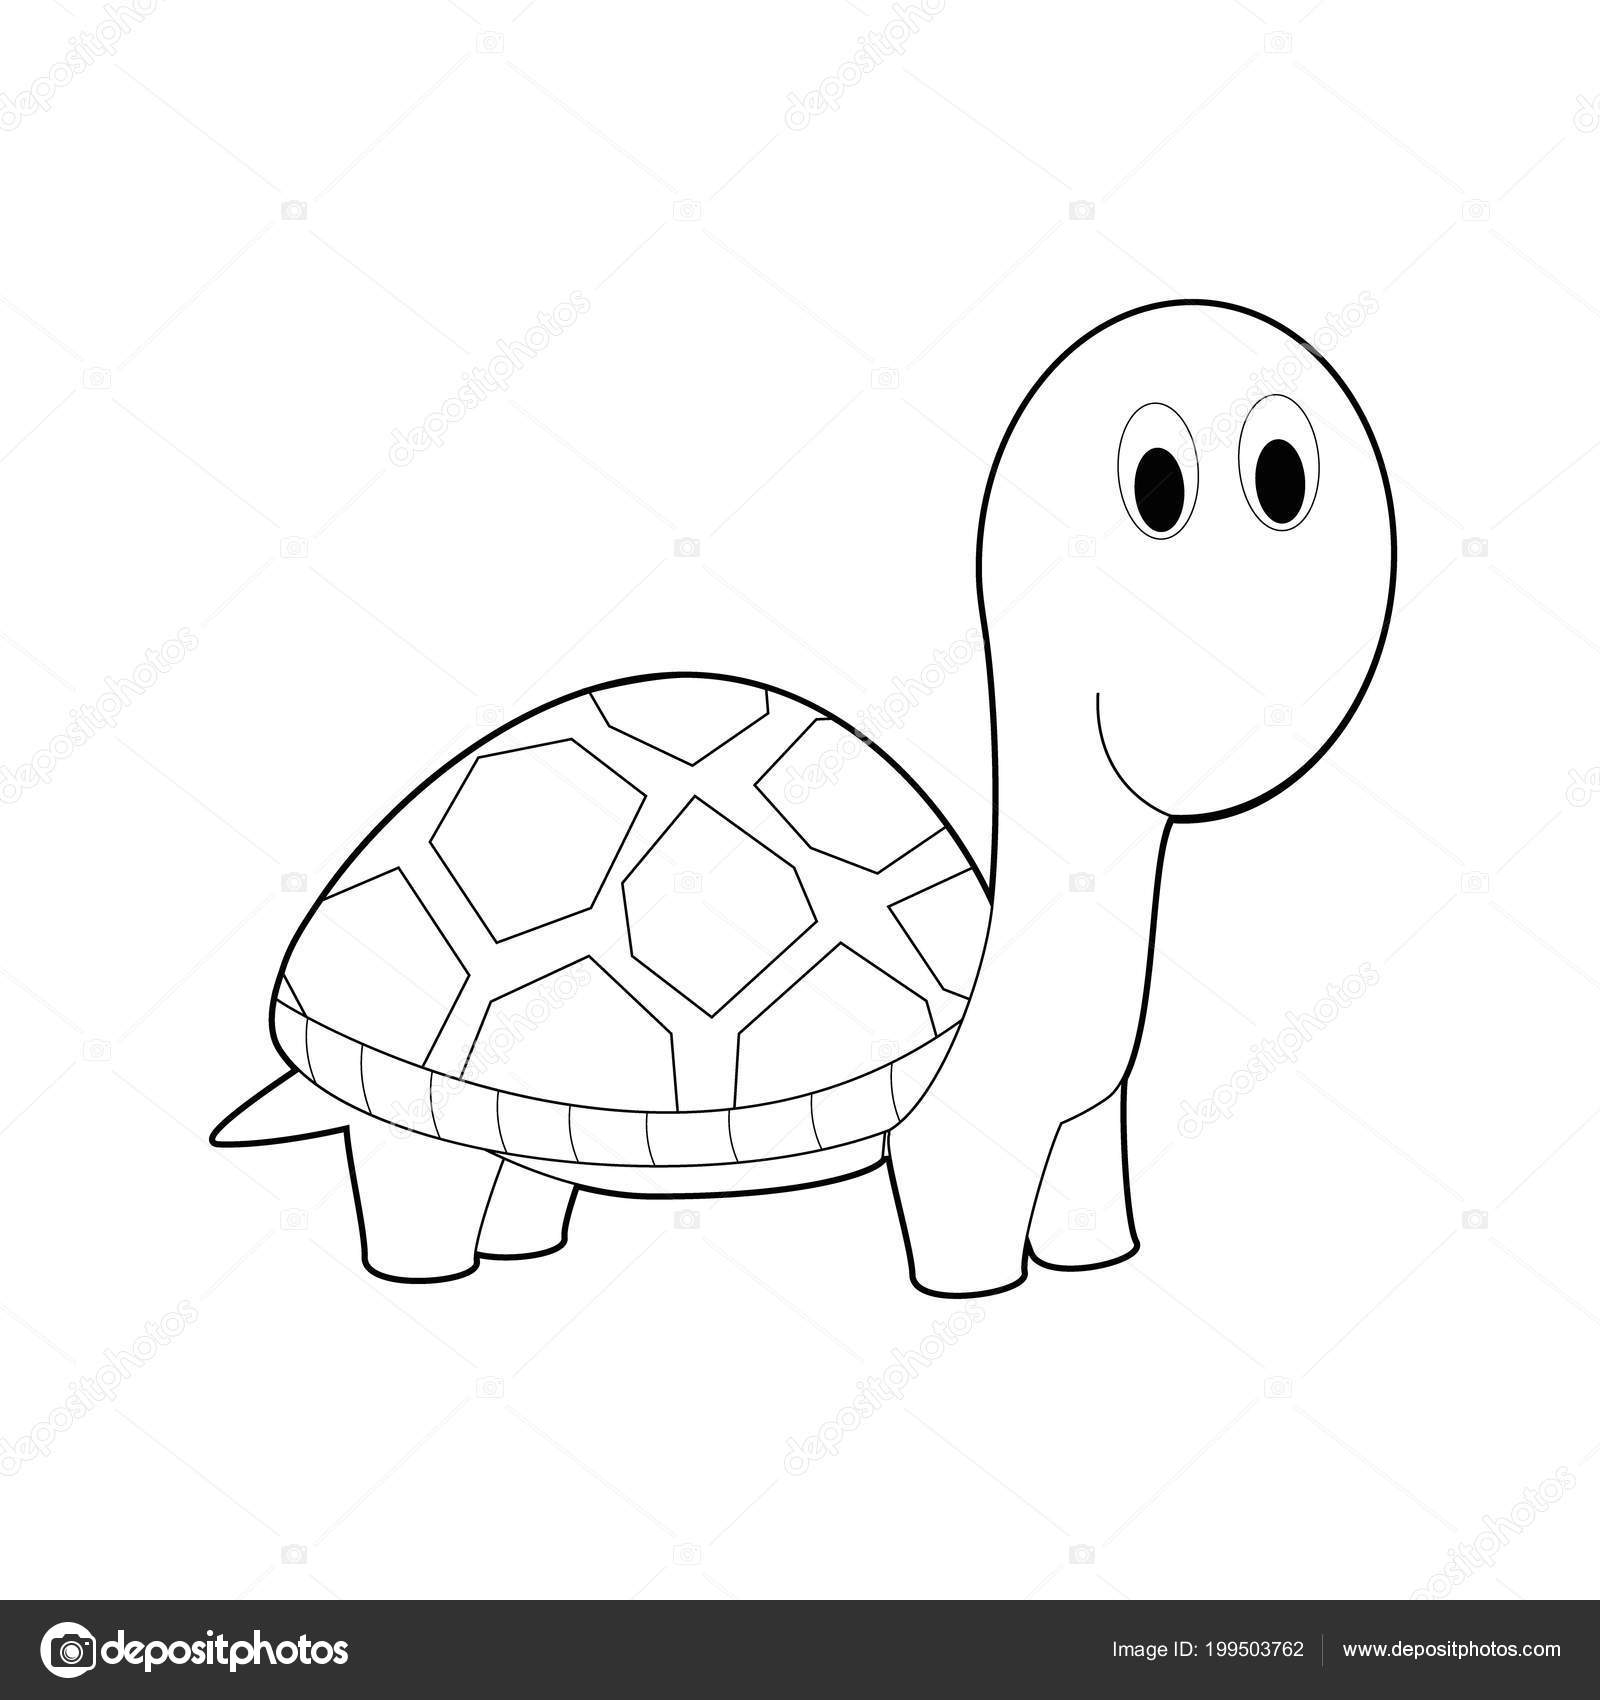 Easy Coloring Drawings Animals Little Kids Turtle Stock Vector